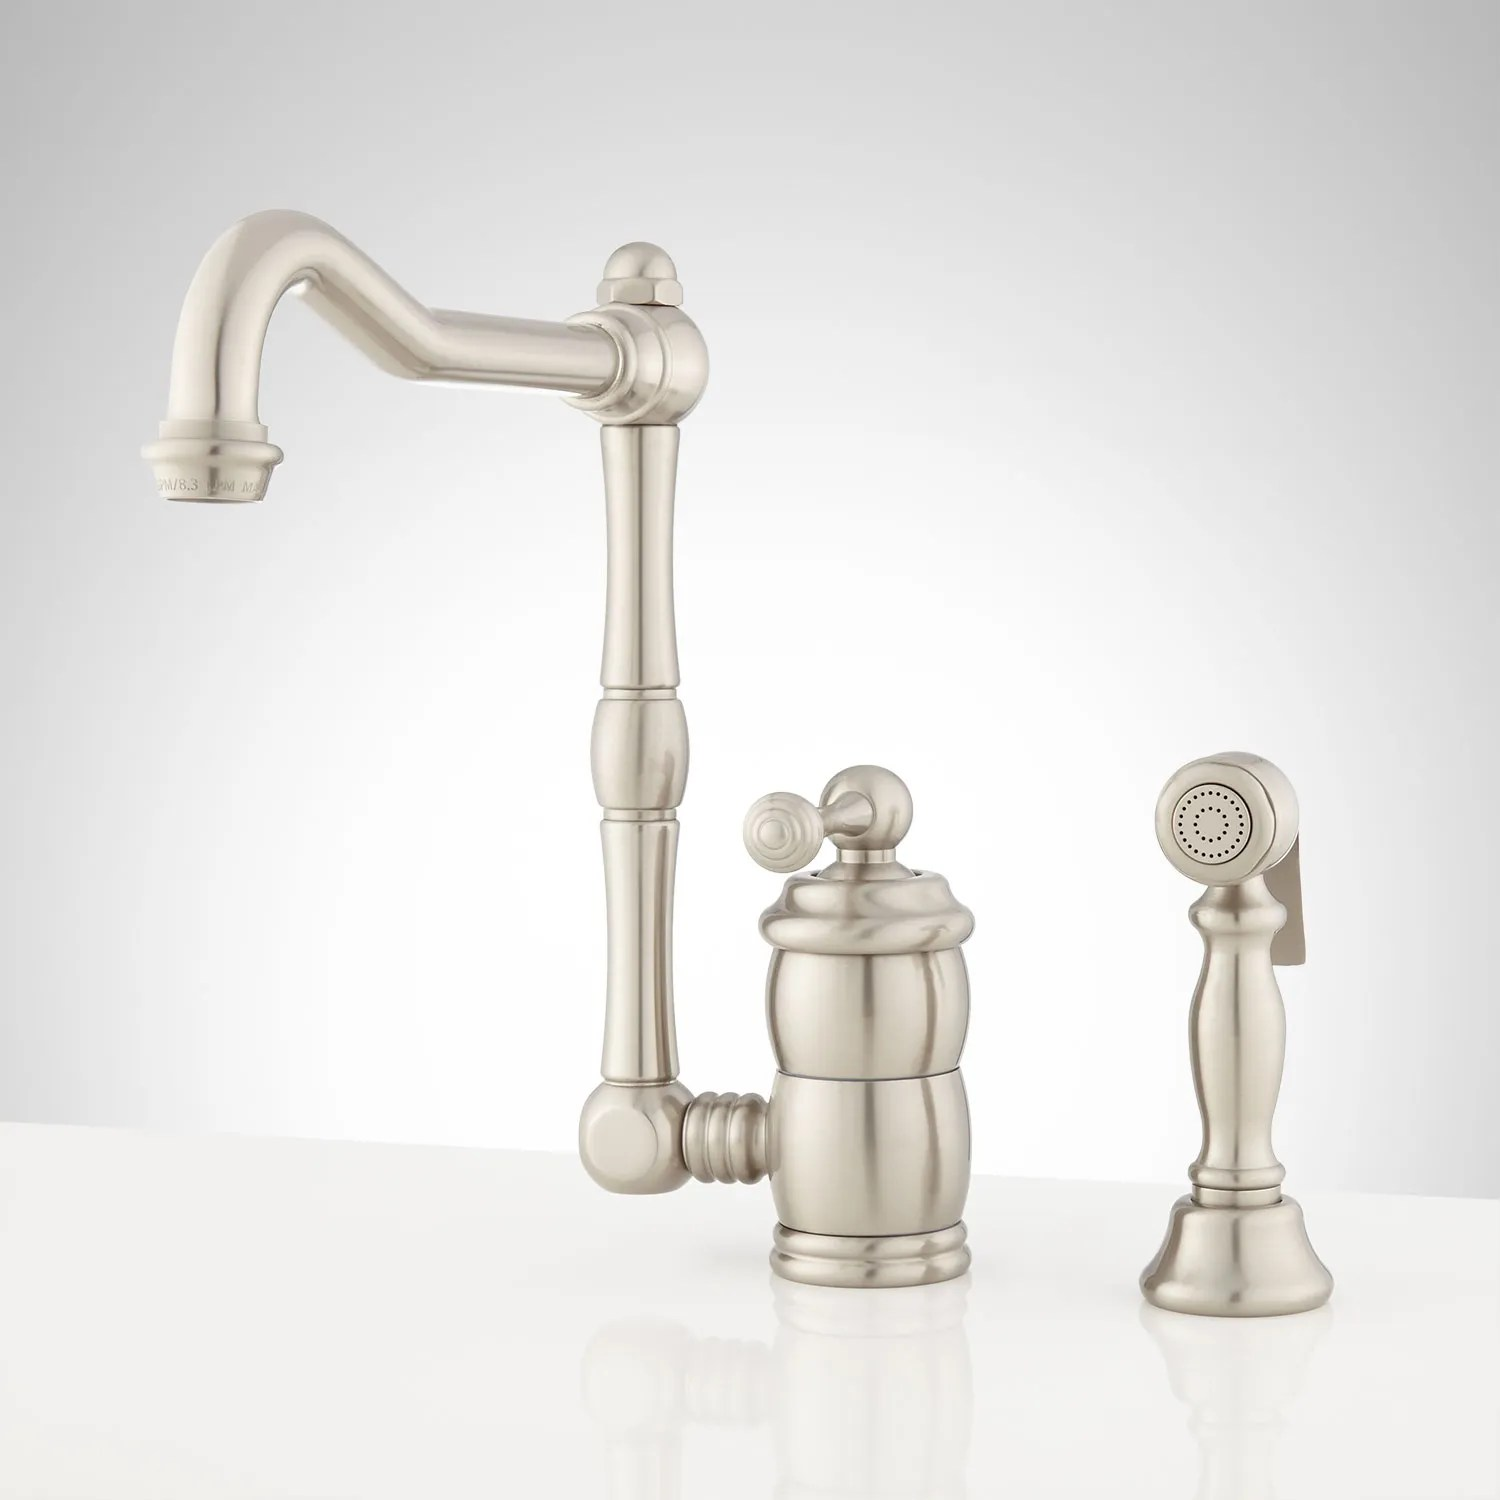 single kitchen faucet under cabinet lighting handle signature hardware mulder hole with side spray